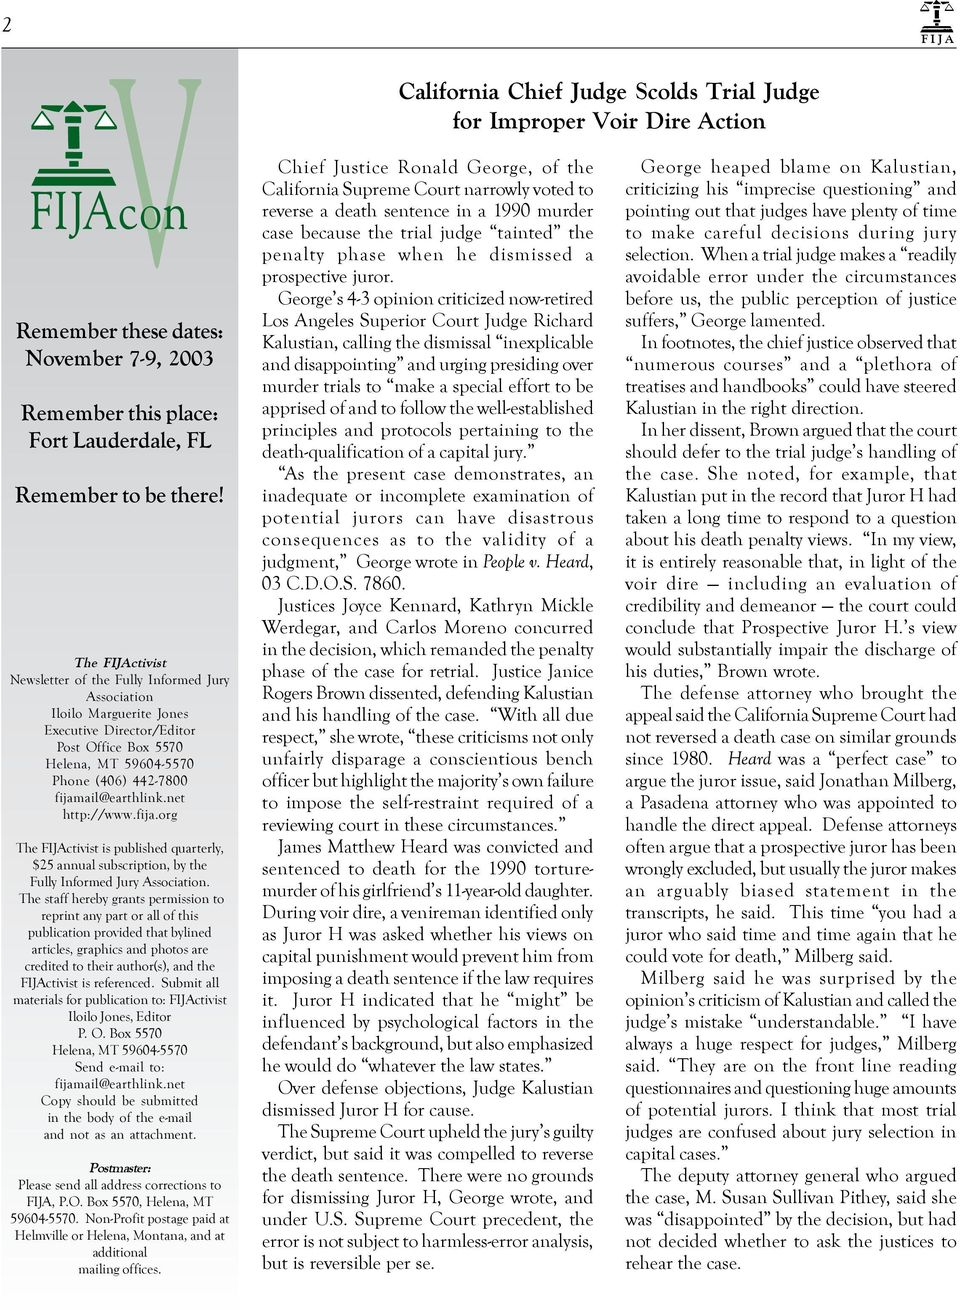 net http://www.fija.org The FIJActivist is published quarterly, $25 annual subscription, by the Fully Informed Jury Association.